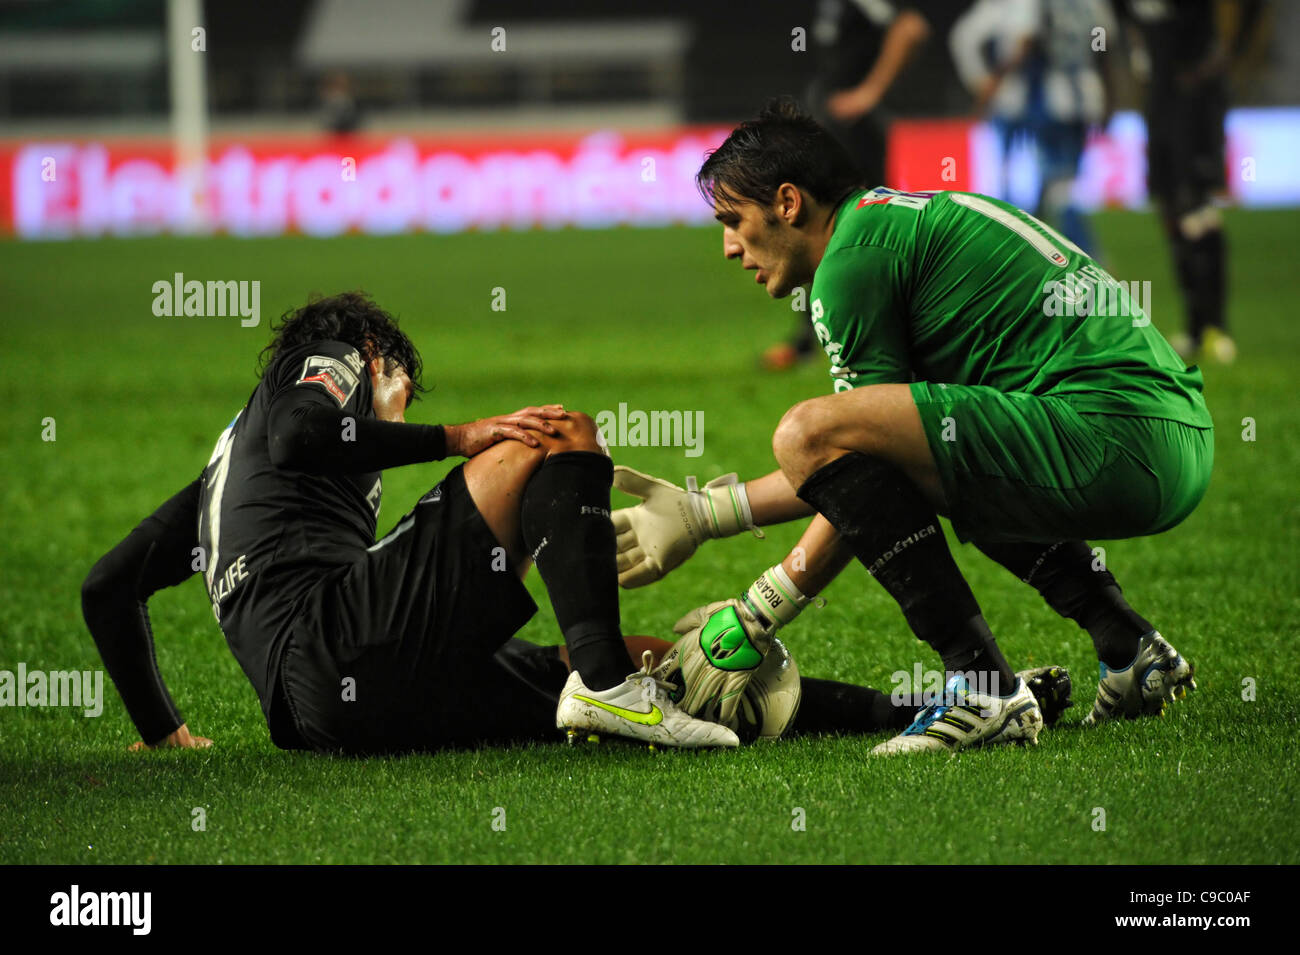 Goalkeeper helping an injured football player get up from the pitch - Stock Image